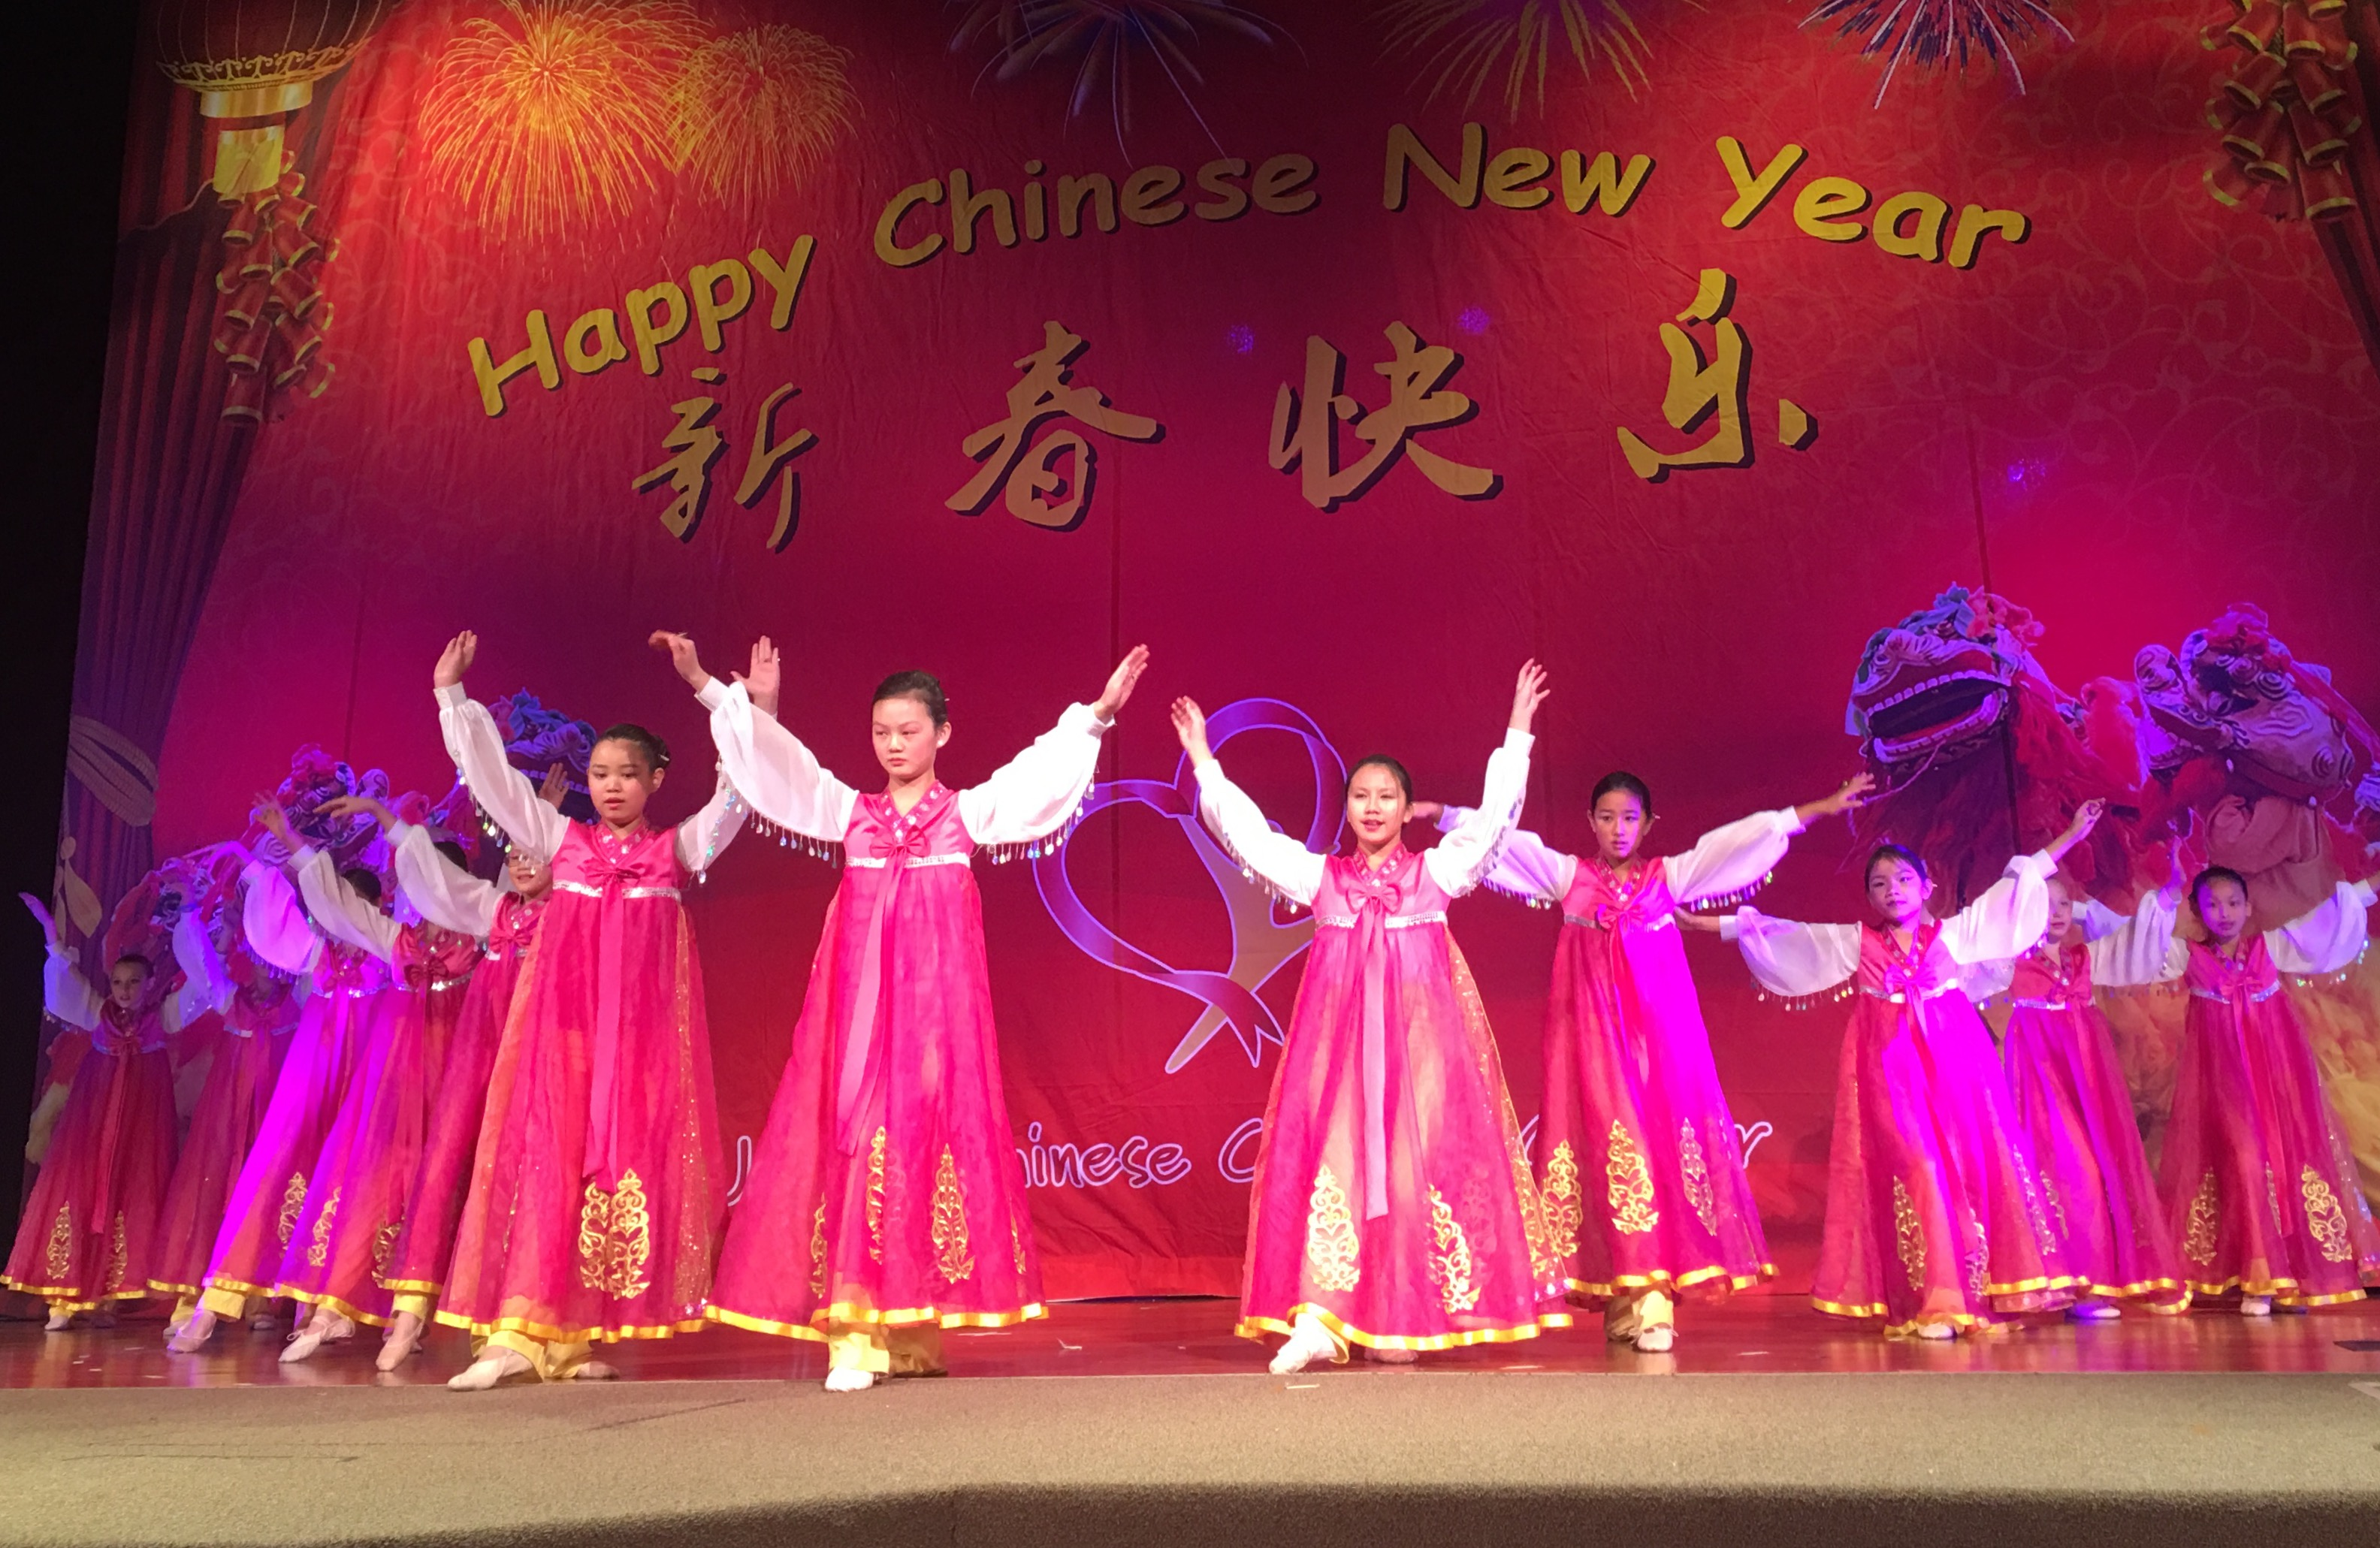 Chinese Level Bells Dance